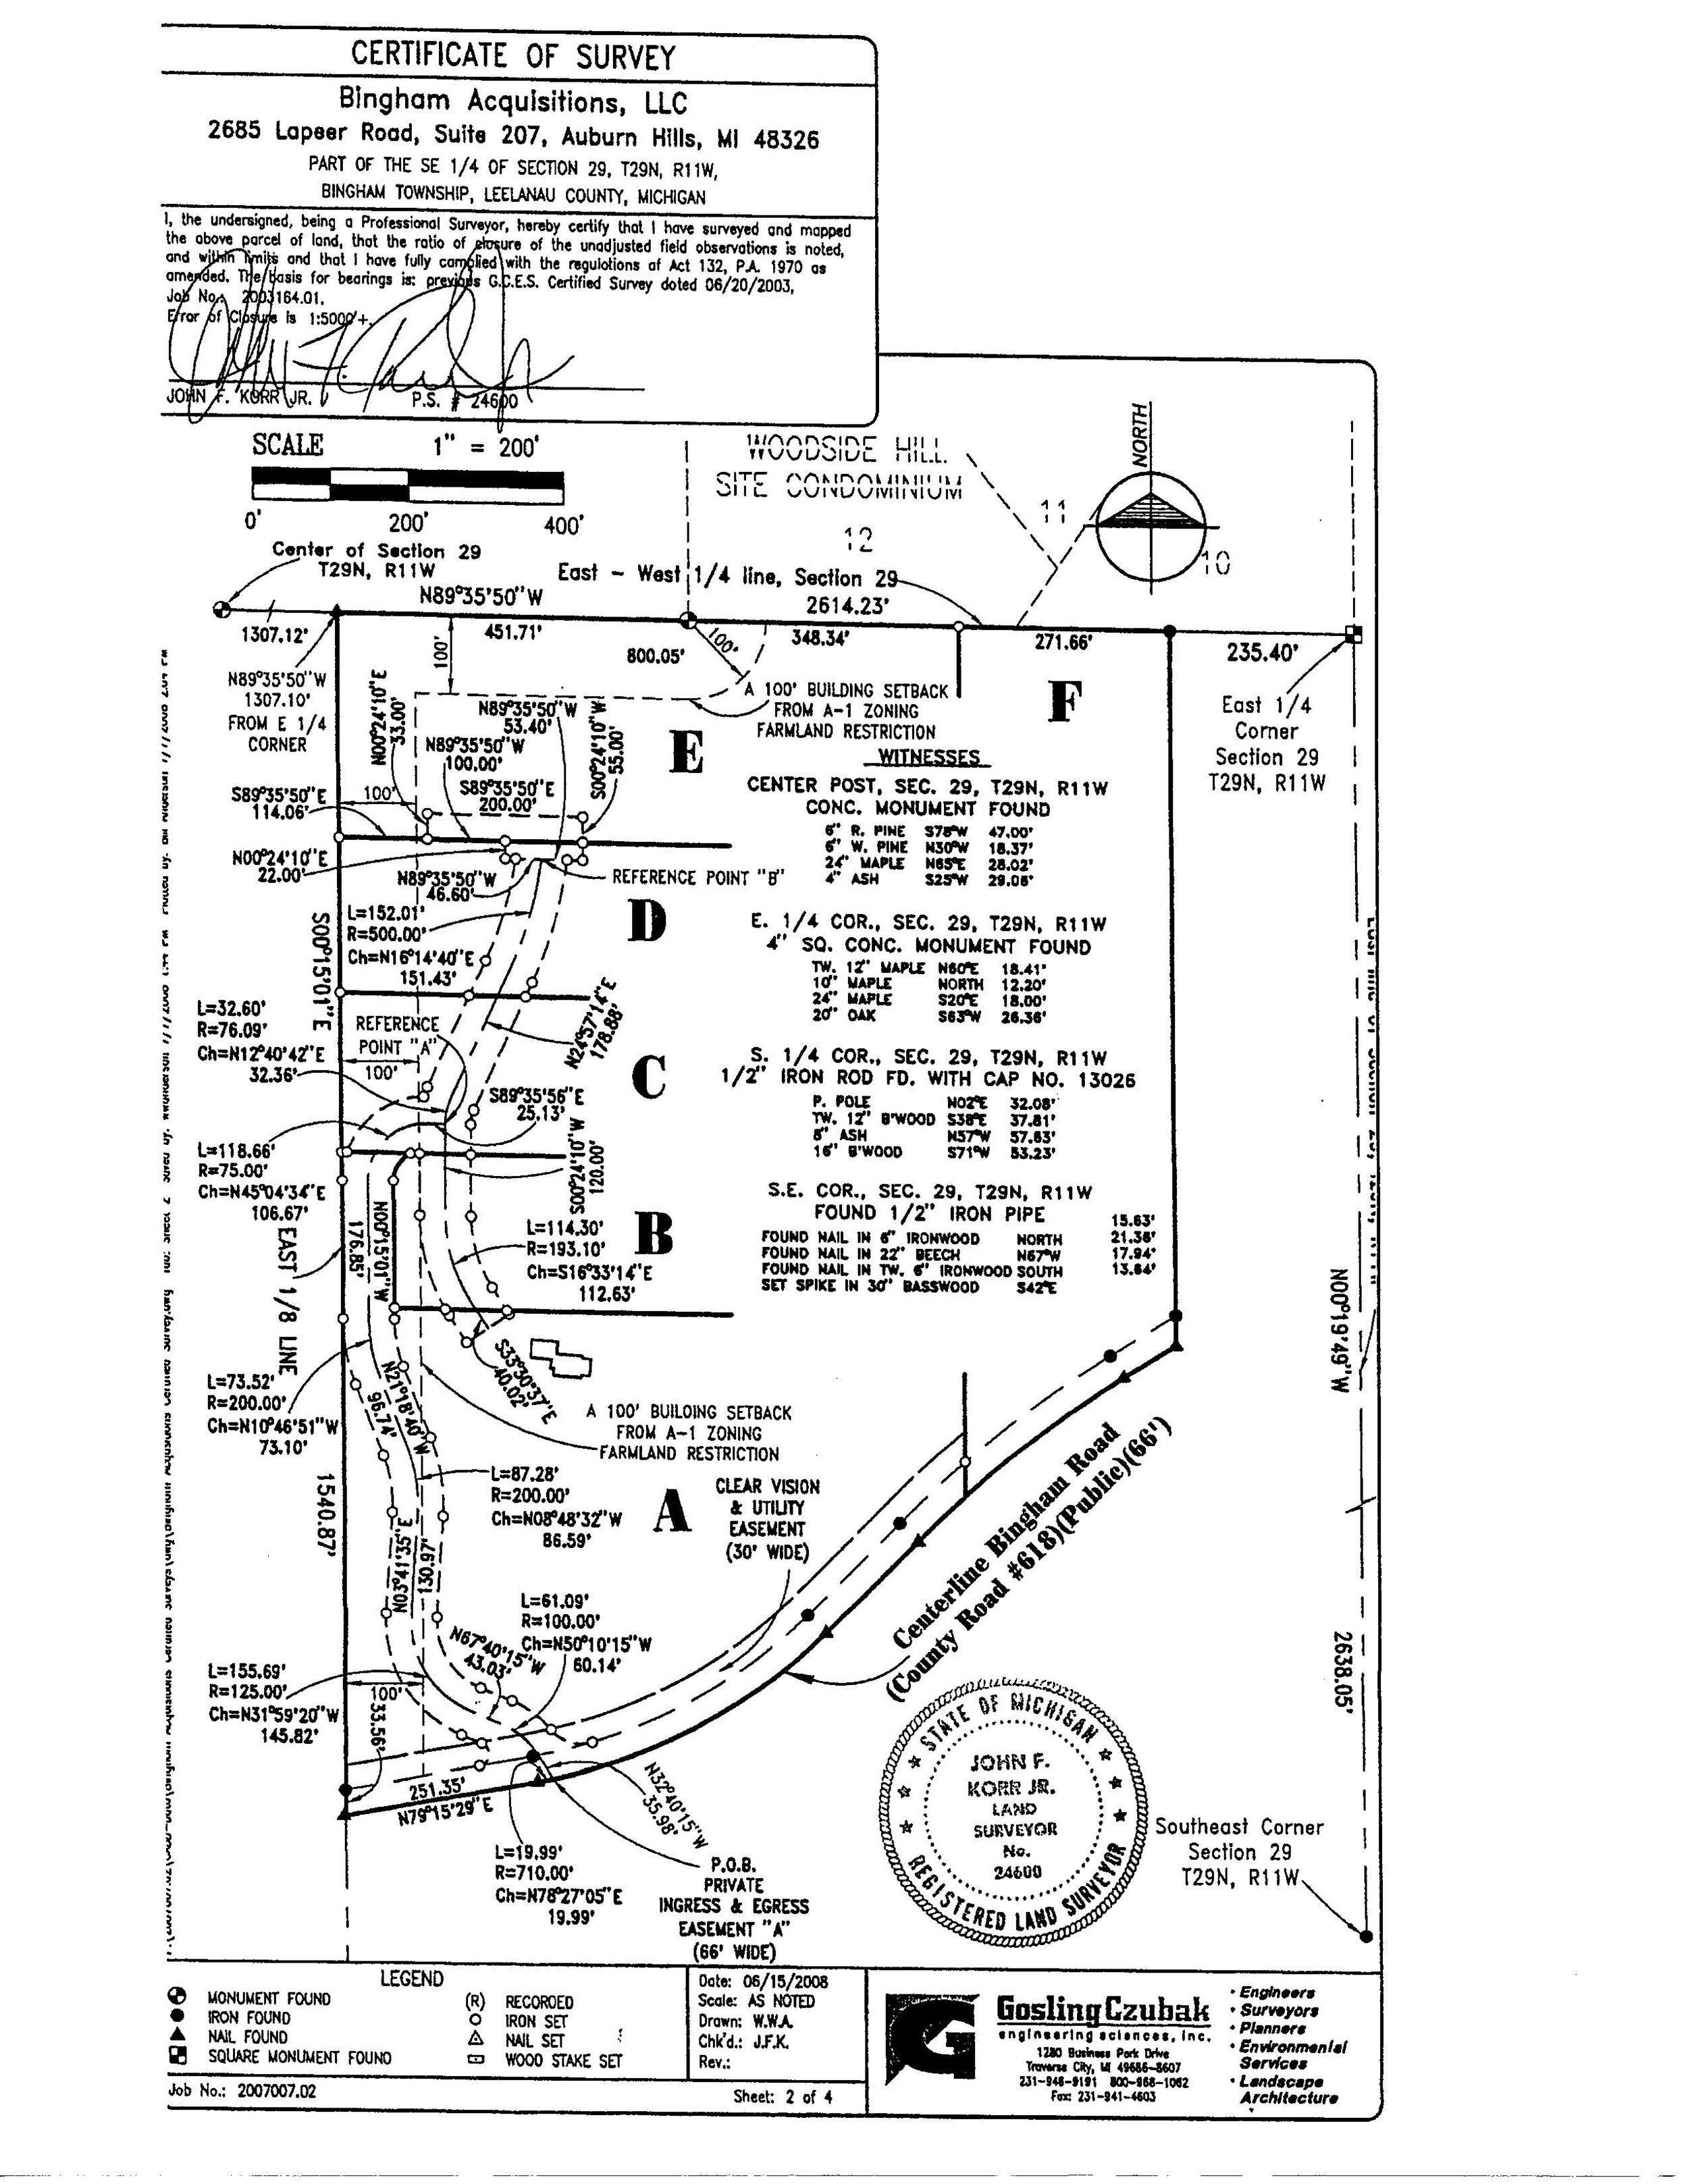 9797 E Bingham Rd, Traverse City, MI – 32 Acre Water View Parcel for sale by Oltersdorf Realty LLC - Marketing Packet (24).jpg